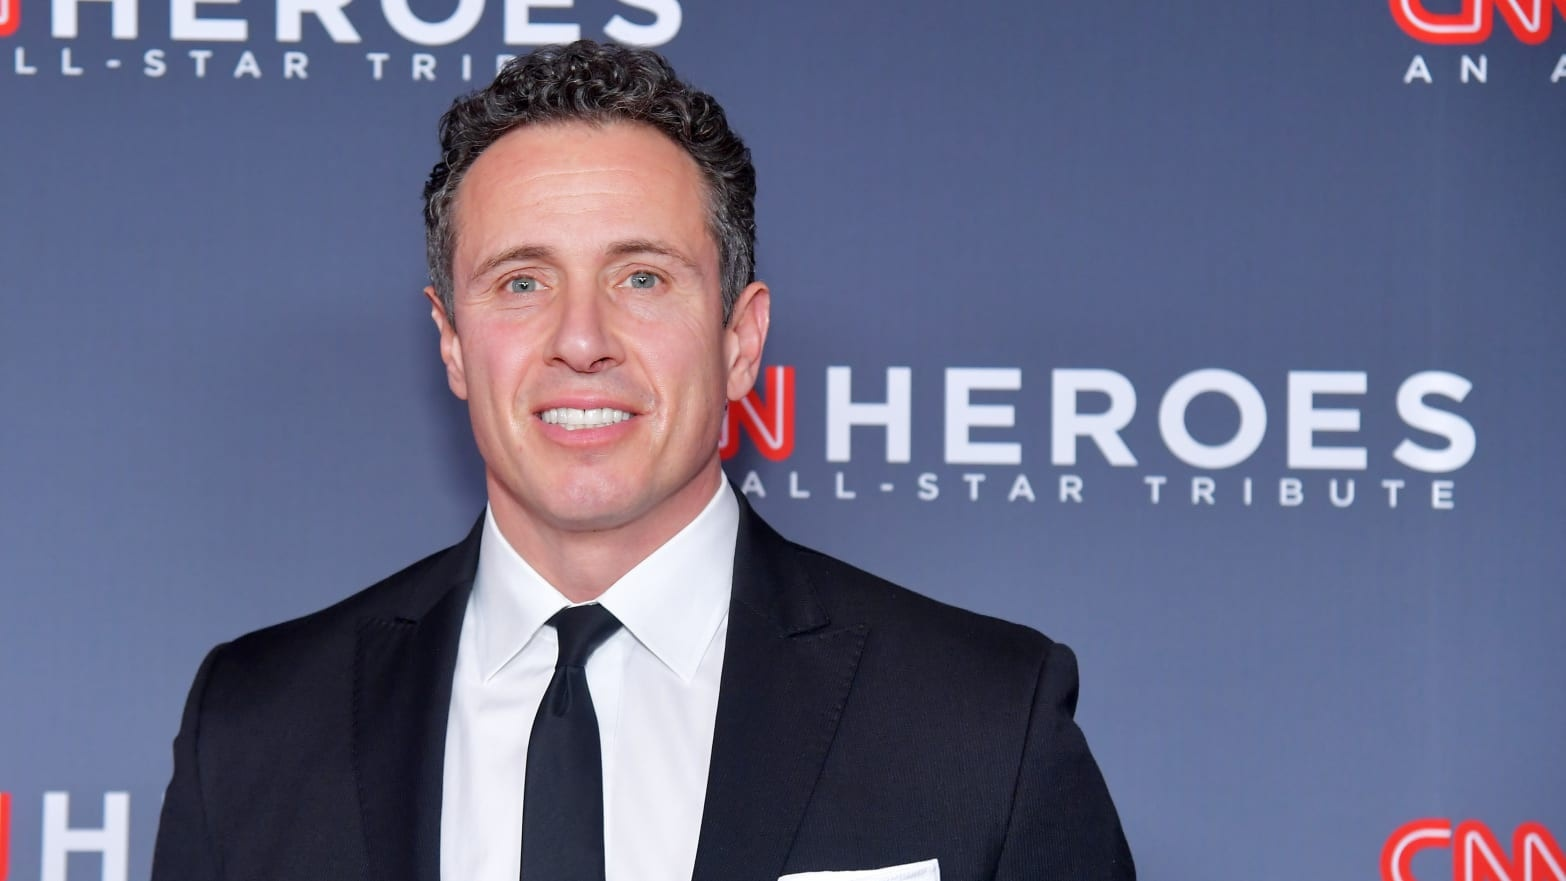 Chris Cuomo